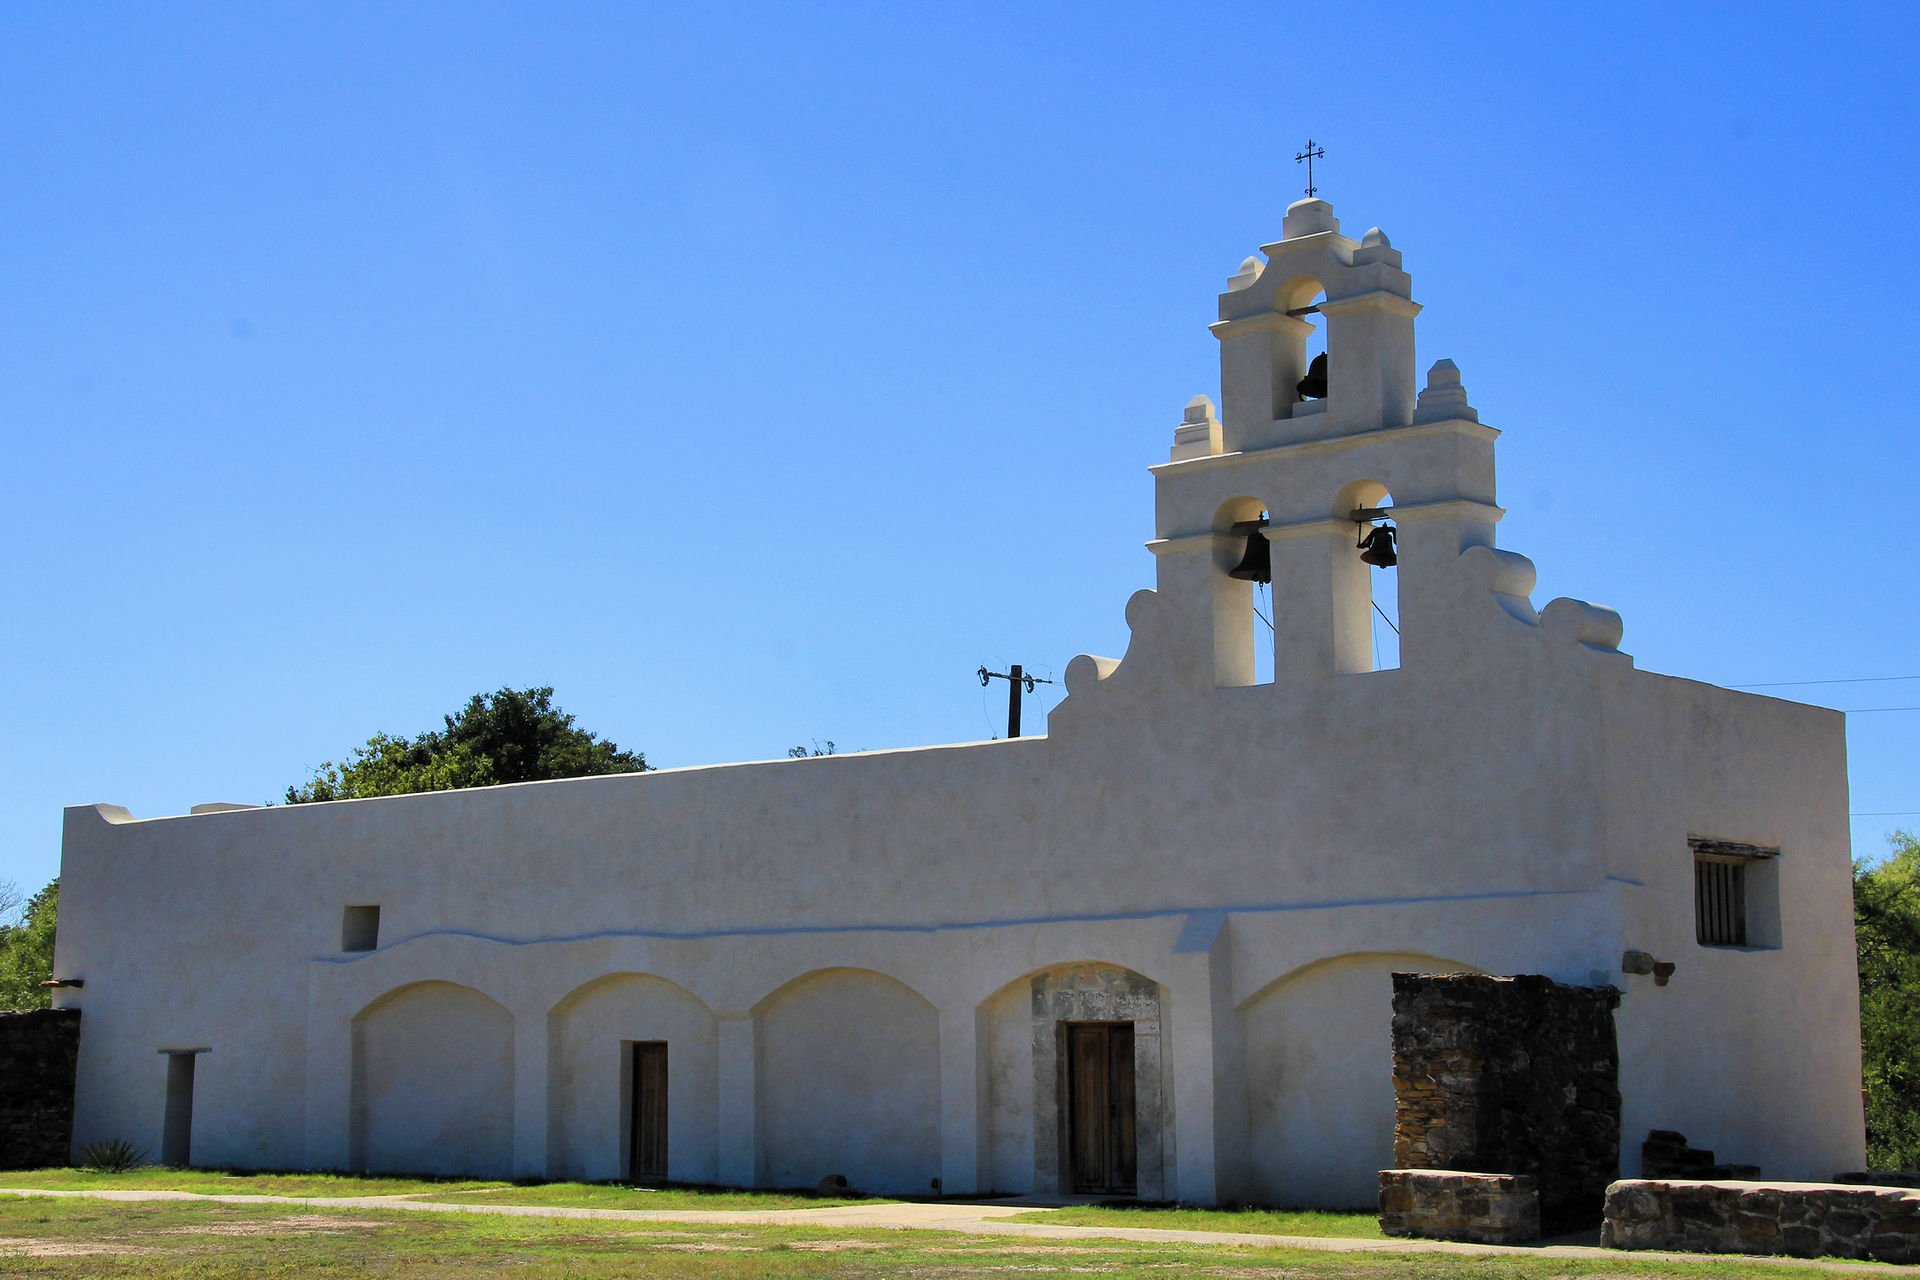 Mission San Juan Capistrano's church was not completed.